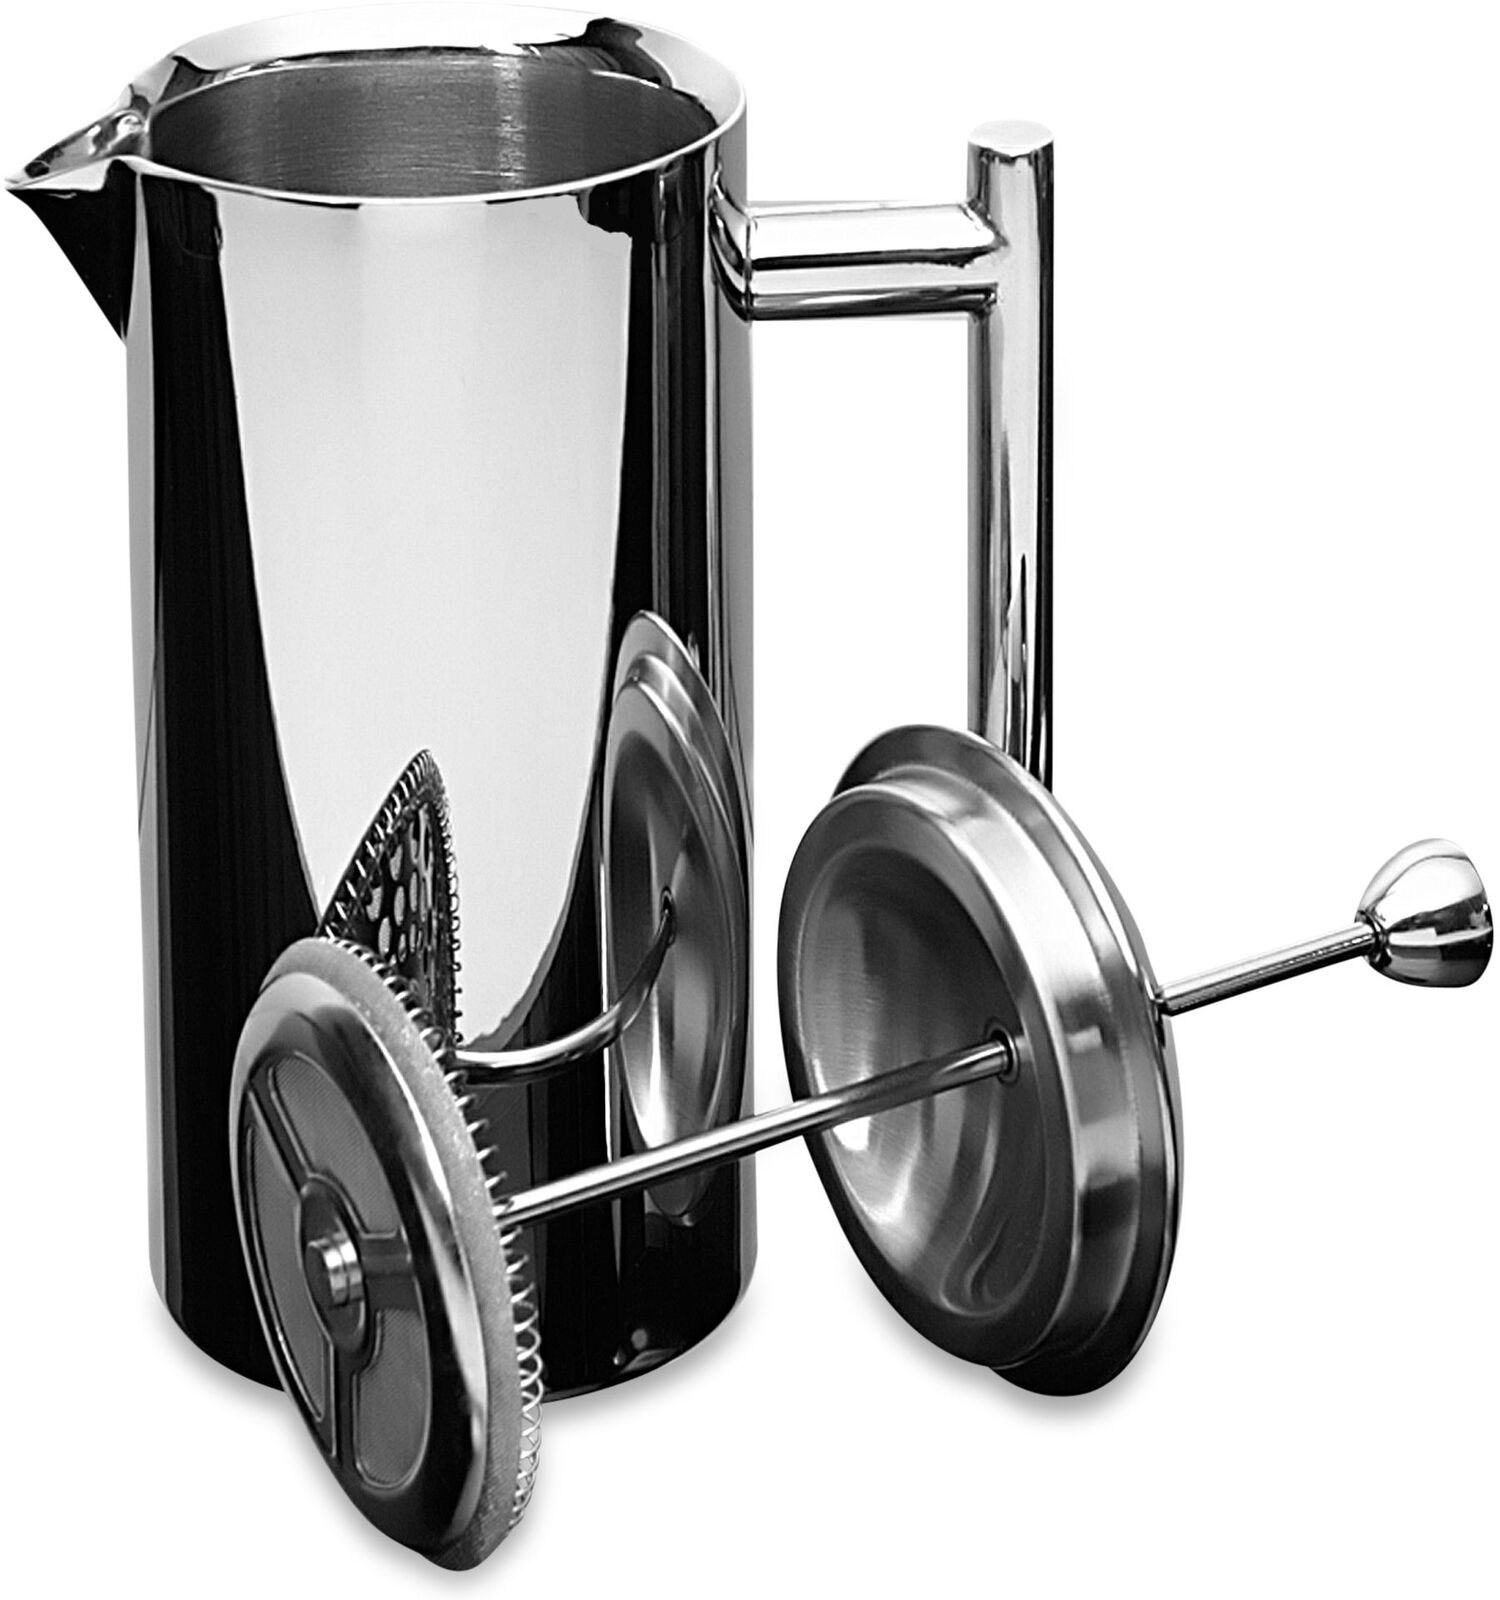 French Press Coffee Maker 35 Oz Insulated Stainless Steel Mirror Finish Handle